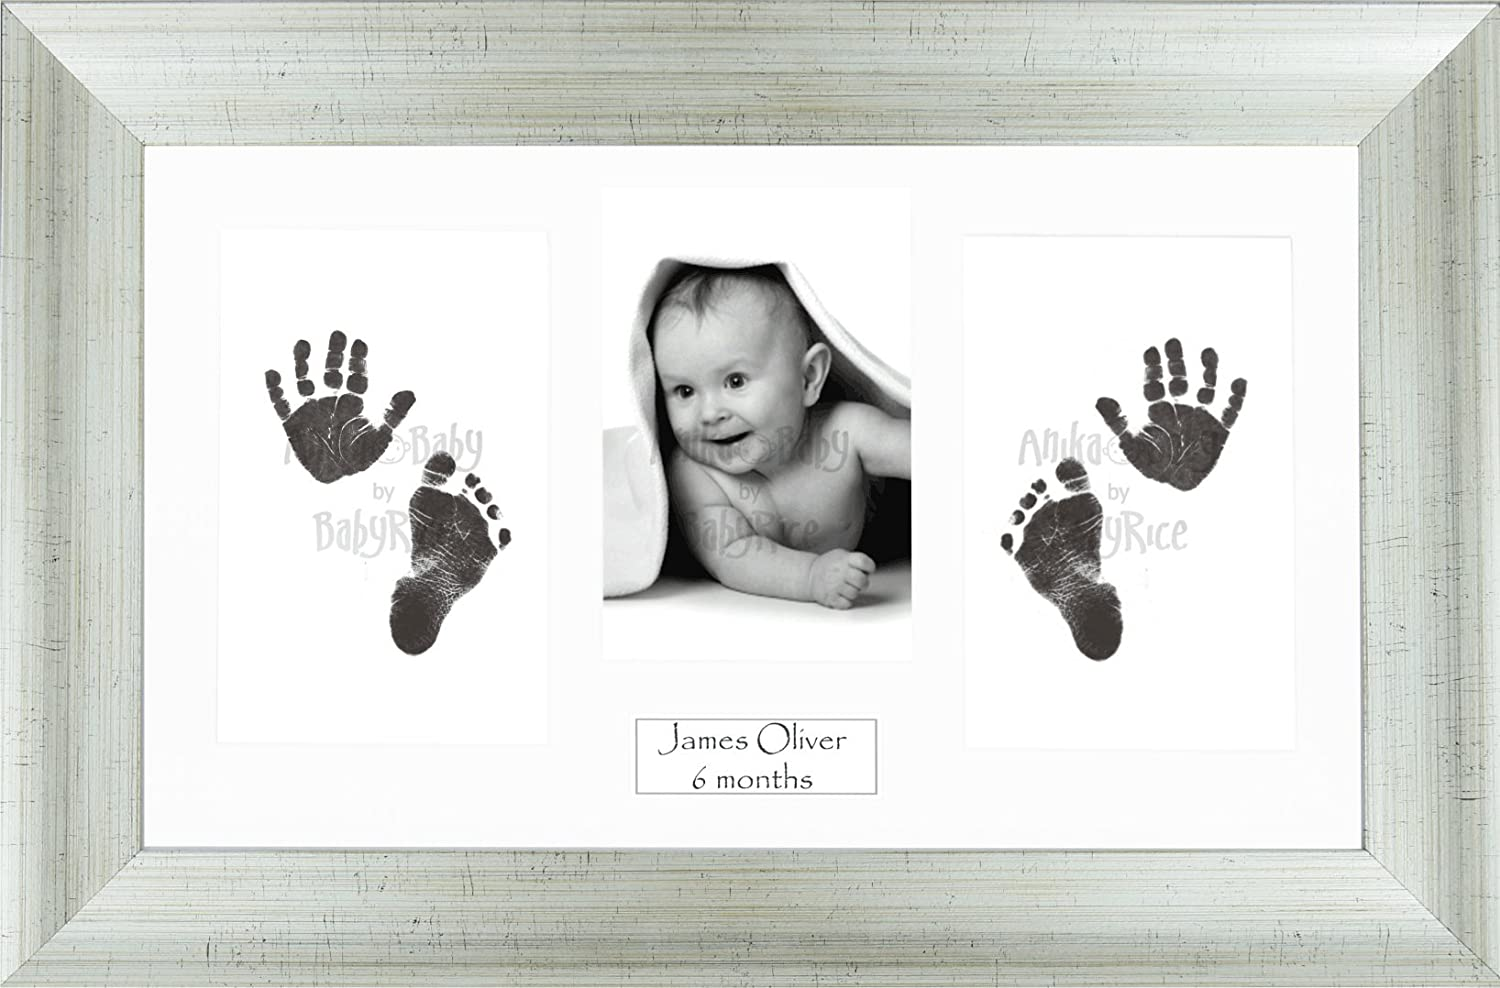 Anika-Baby BabyRice Baby Hand and Footprints Kit Includes Black Inkless Prints/Aged Antique Silver Effect Frame with White Mount Display